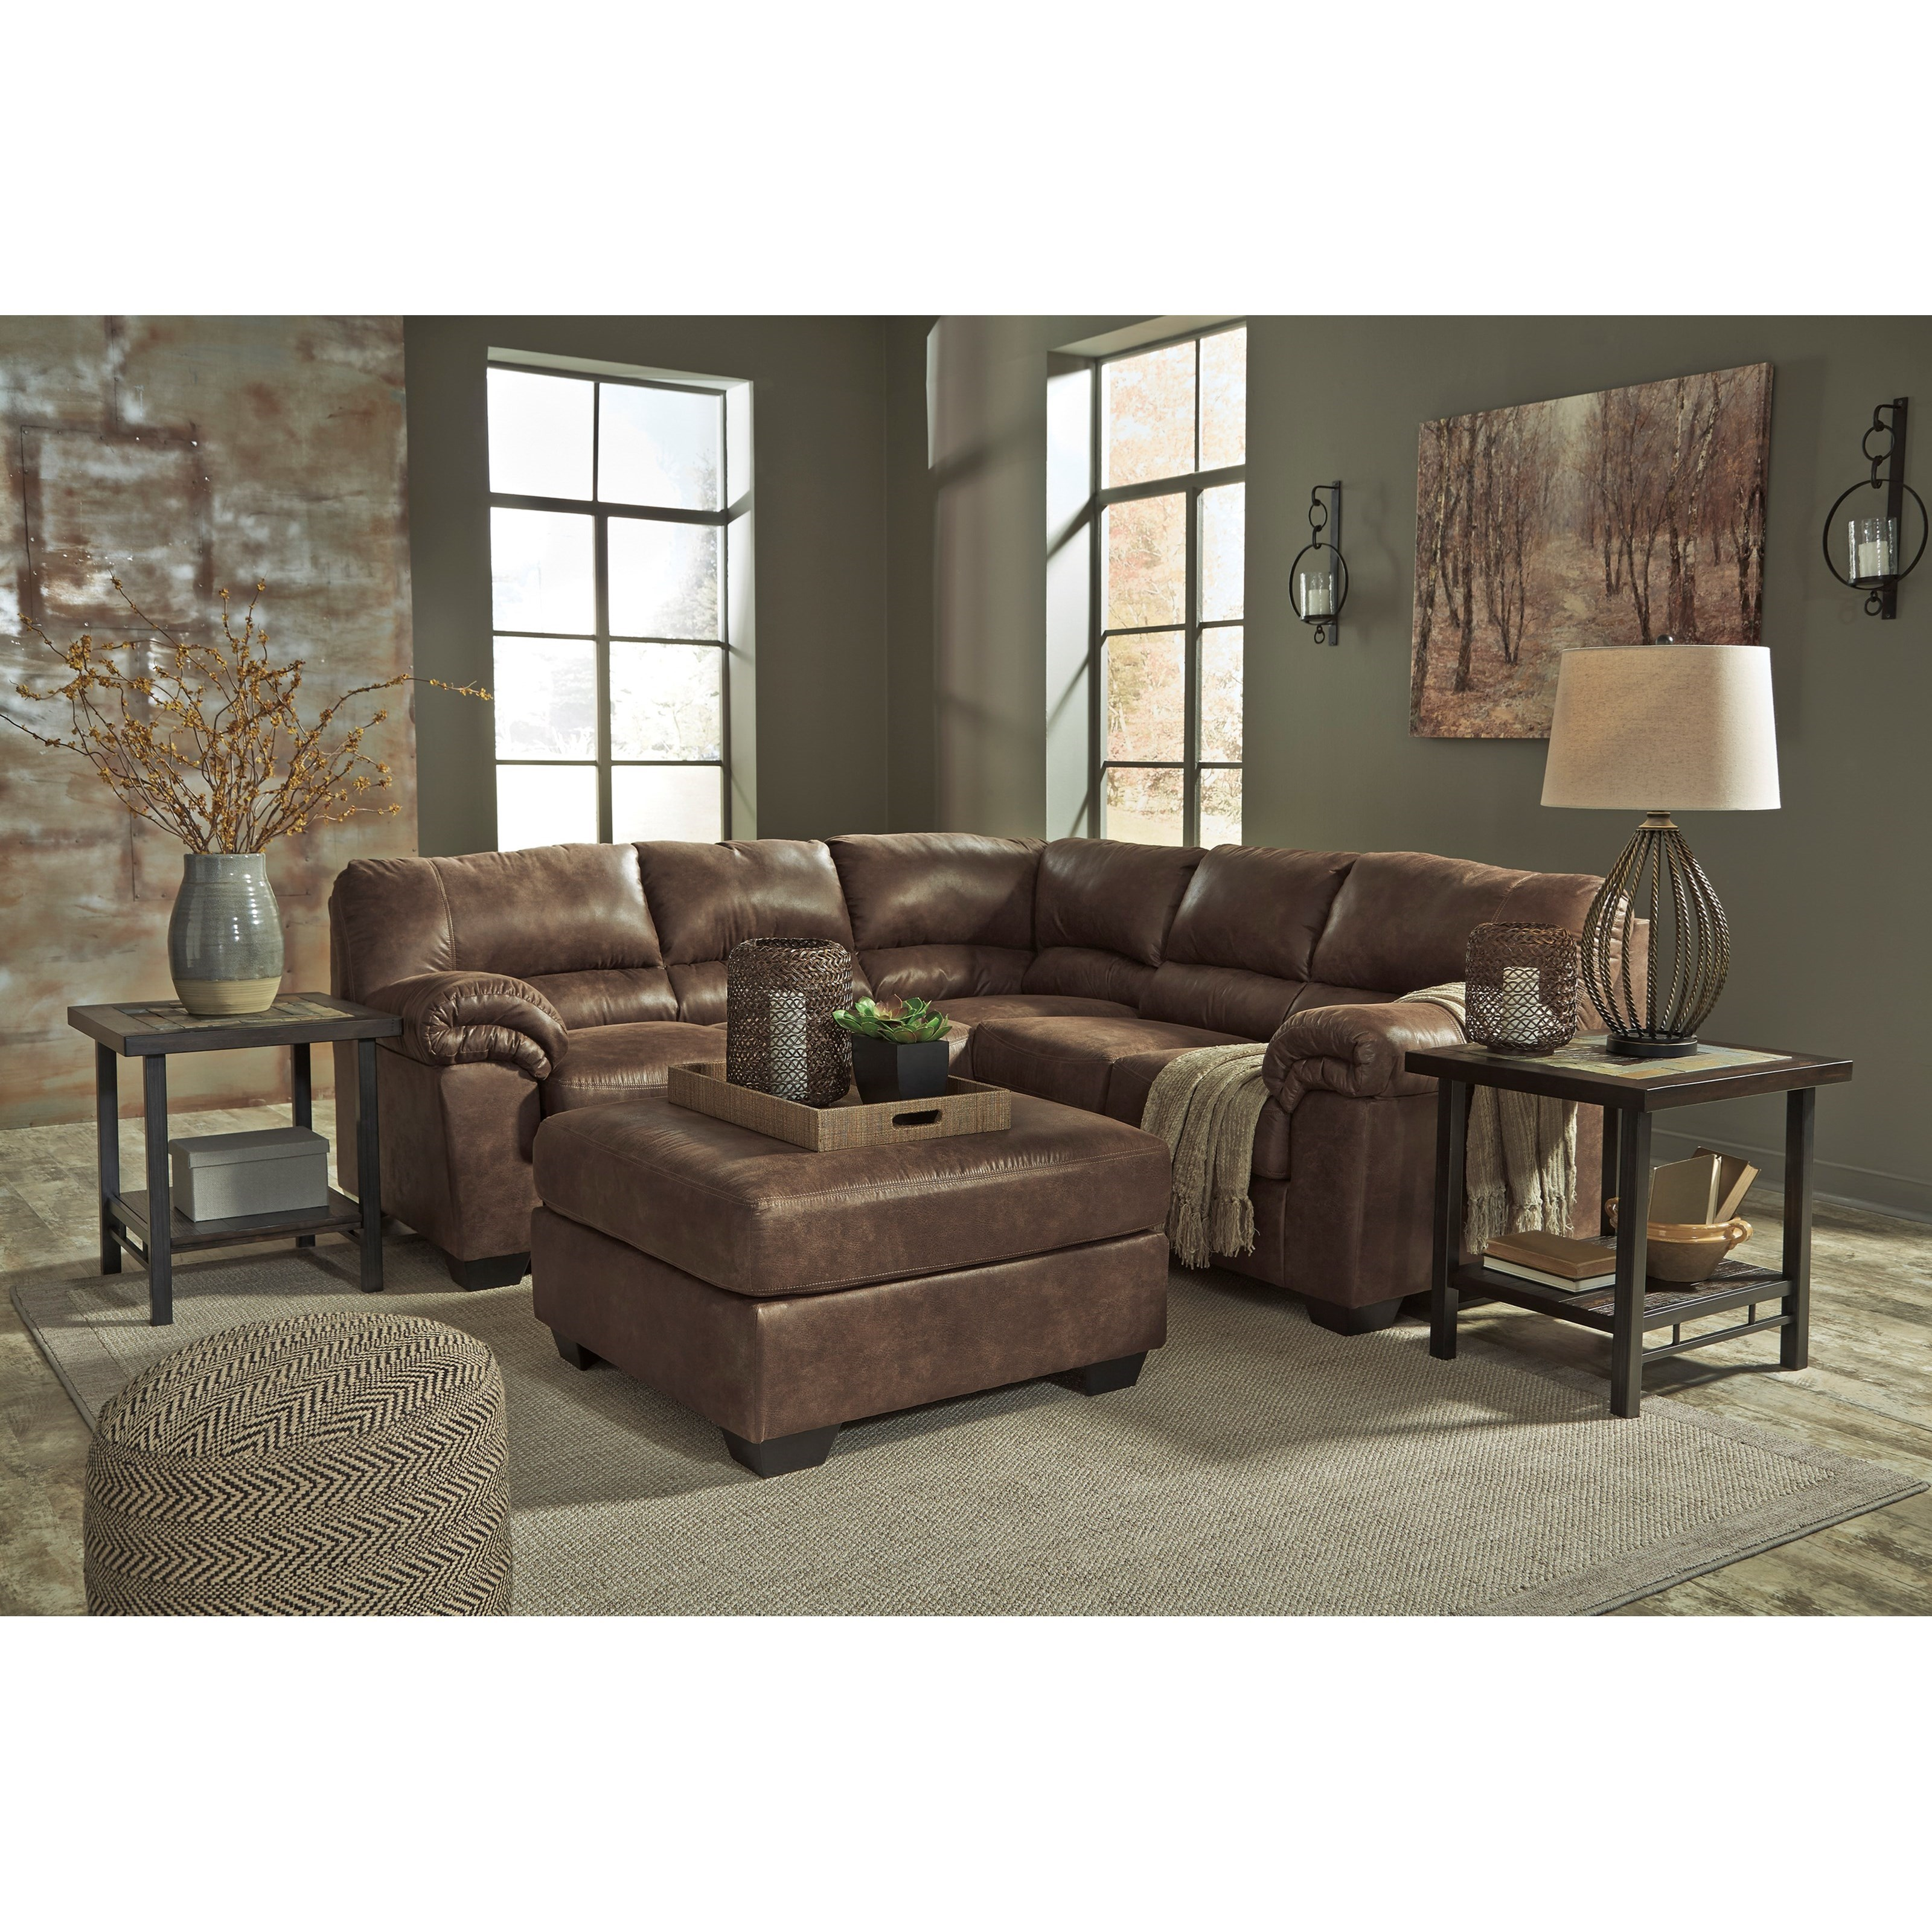 Signature Design By Ashley Bladen Two Piece Faux Leather Sectional Household Furniture